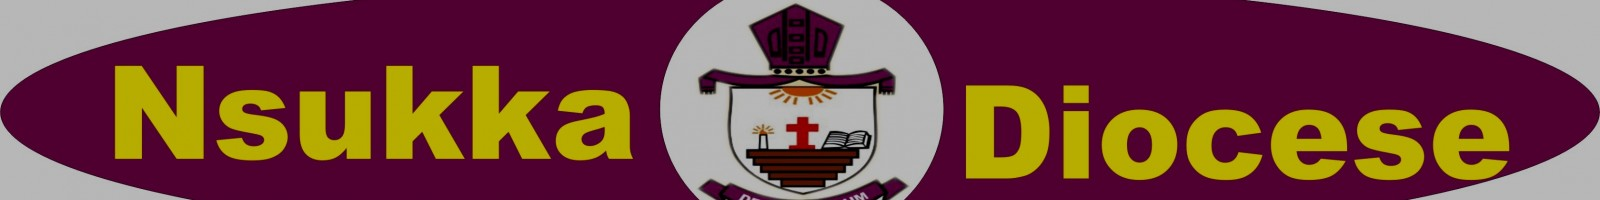 Anglican Diocese of Nsukka